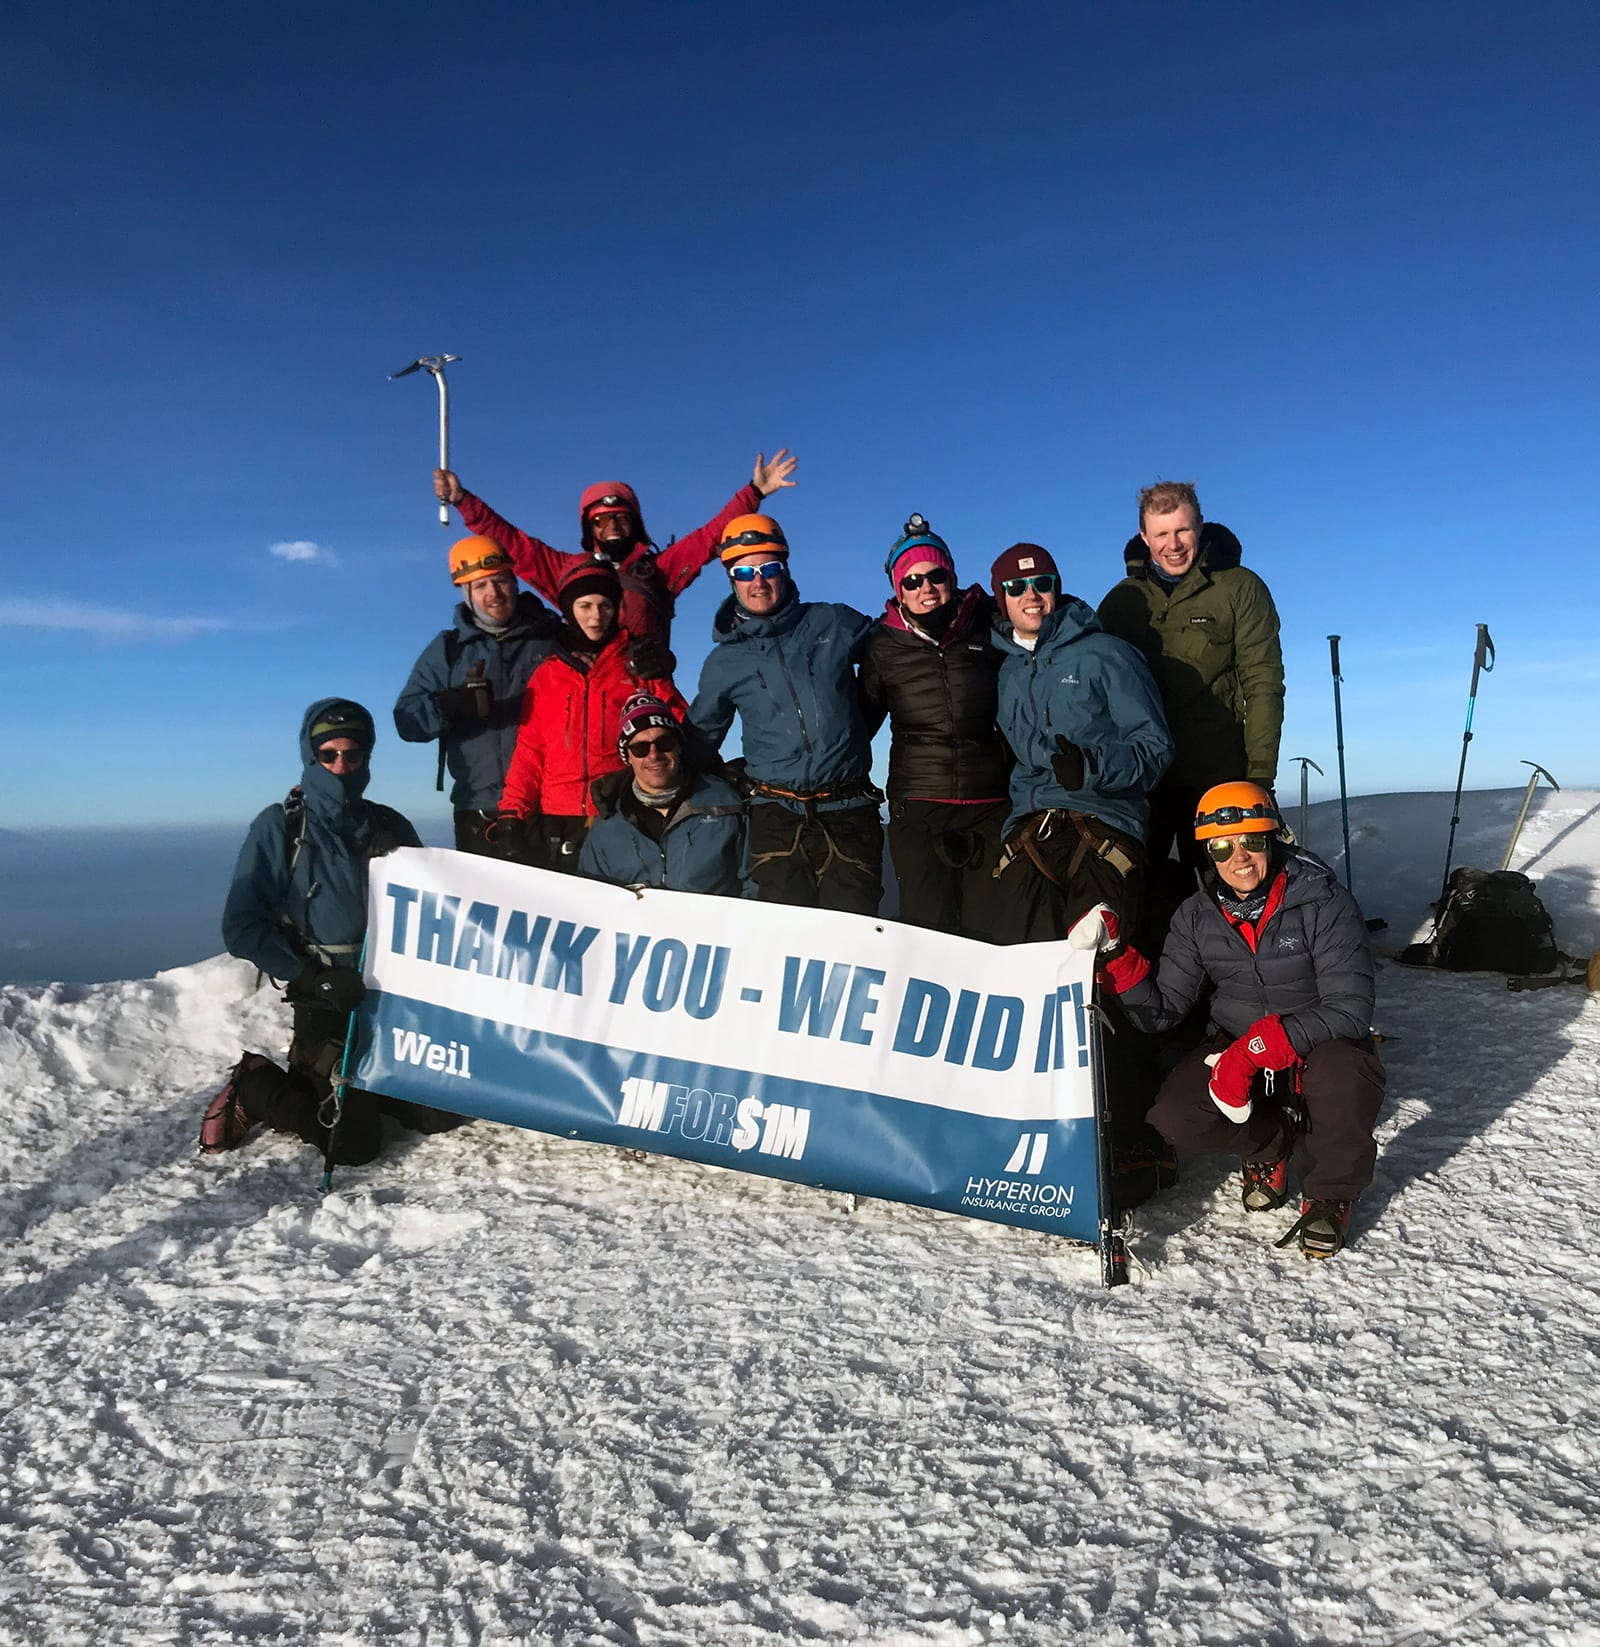 Mountainerers at the top of a mountain